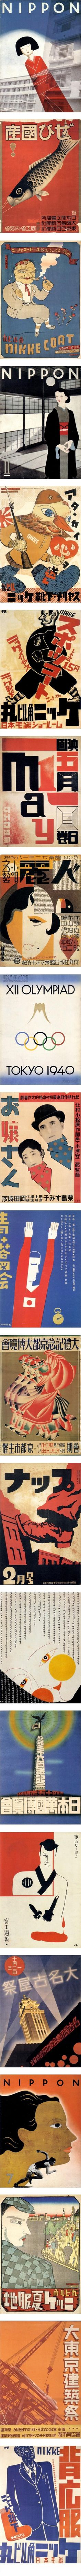 Collection of Japanese Graphic Design From The 1920s 30s